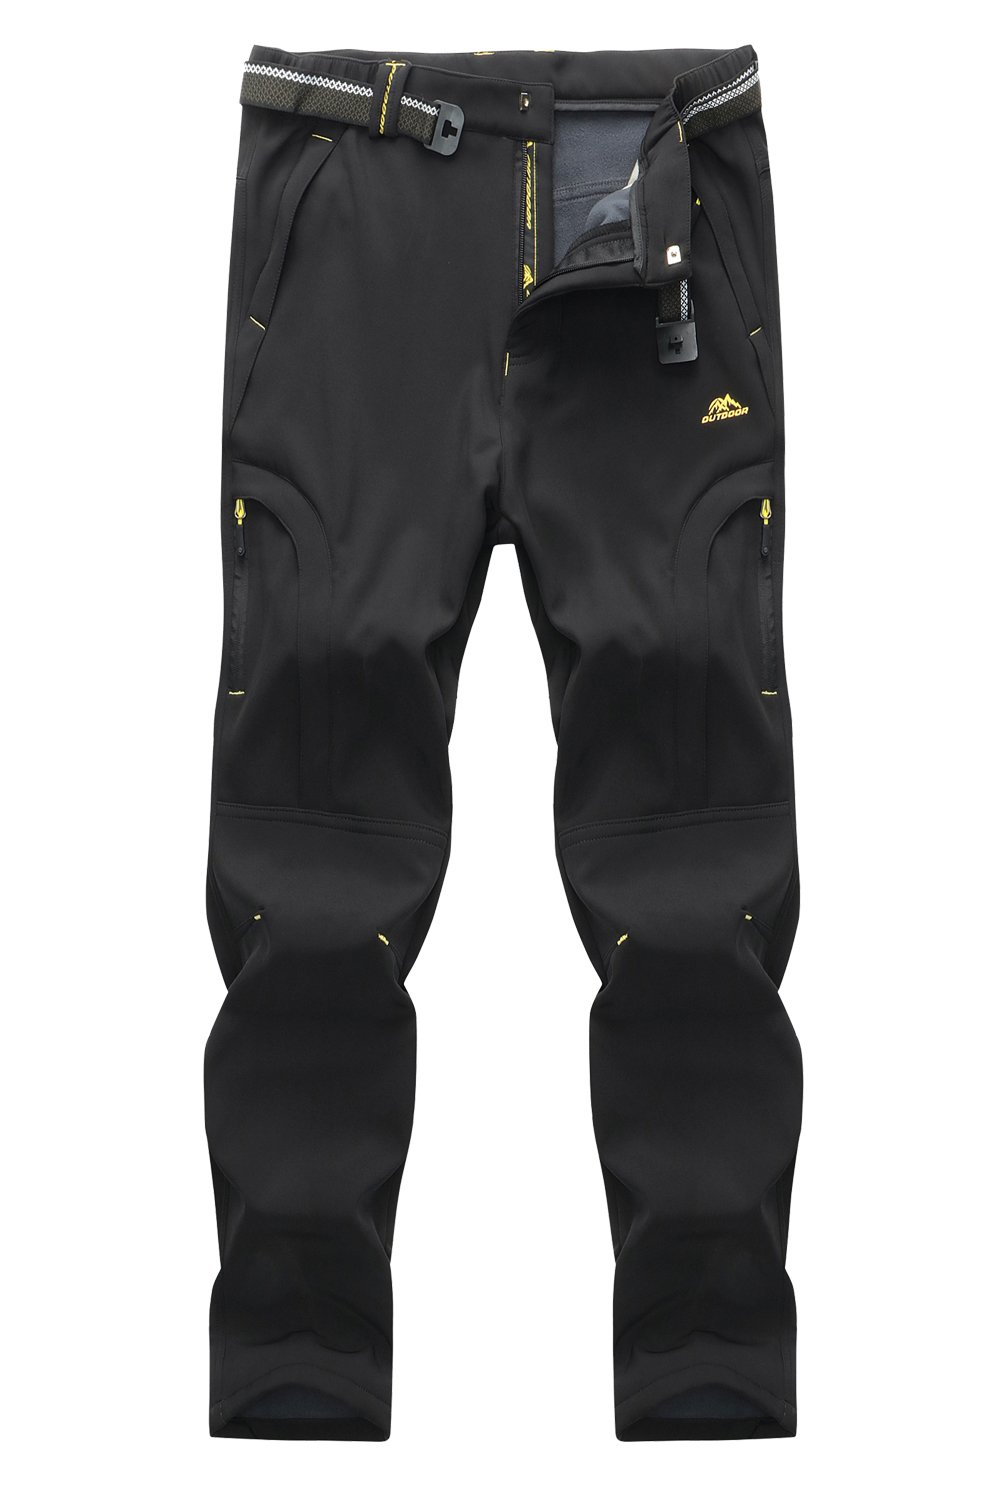 Mr.Stream Men's Hiking Breathable Quick Drying Outdoor Sports Convertible Pants